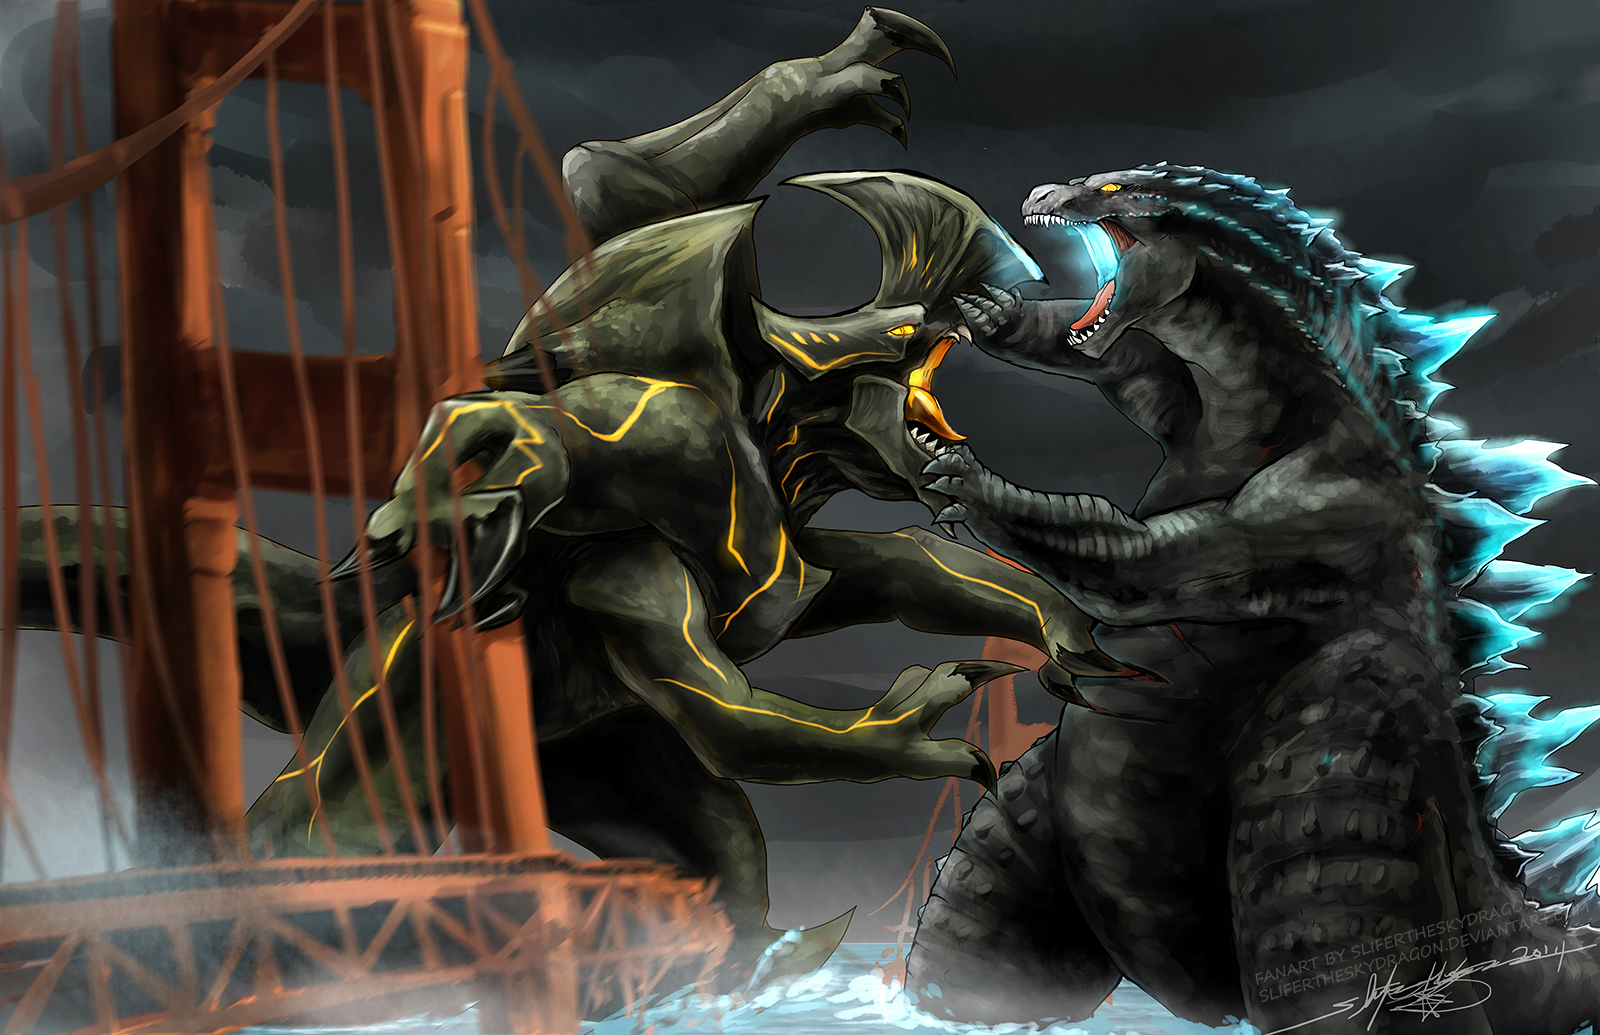 pacific rim trespasser scene - photo #4